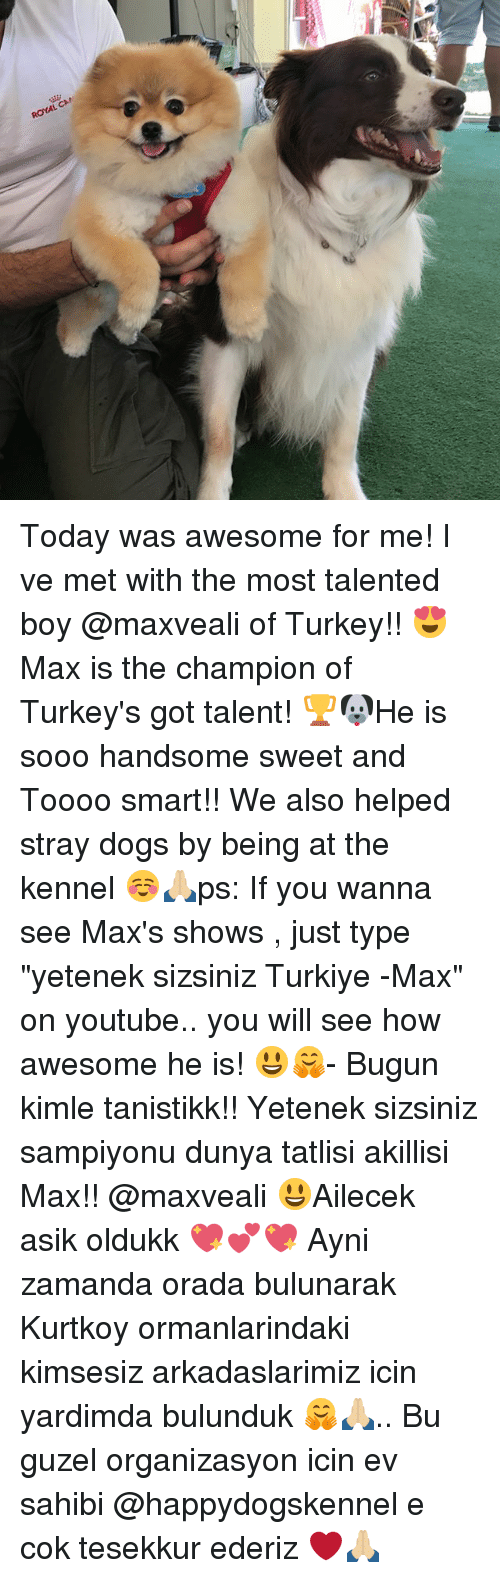 "Dogs, Memes, and youtube.com: ROYAL CA Today was awesome for me! I ve met with the most talented boy @maxveali of Turkey!! 😍Max is the champion of Turkey's got talent! 🏆🐶He is sooo handsome sweet and Toooo smart!! We also helped stray dogs by being at the kennel ☺️🙏🏼ps: If you wanna see Max's shows , just type ""yetenek sizsiniz Turkiye -Max"" on youtube.. you will see how awesome he is! 😃🤗- Bugun kimle tanistikk!! Yetenek sizsiniz sampiyonu dunya tatlisi akillisi Max!! @maxveali 😃Ailecek asik oldukk 💖💕💖 Ayni zamanda orada bulunarak Kurtkoy ormanlarindaki kimsesiz arkadaslarimiz icin yardimda bulunduk 🤗🙏🏼.. Bu guzel organizasyon icin ev sahibi @happydogskennel e cok tesekkur ederiz ❤️🙏🏼"